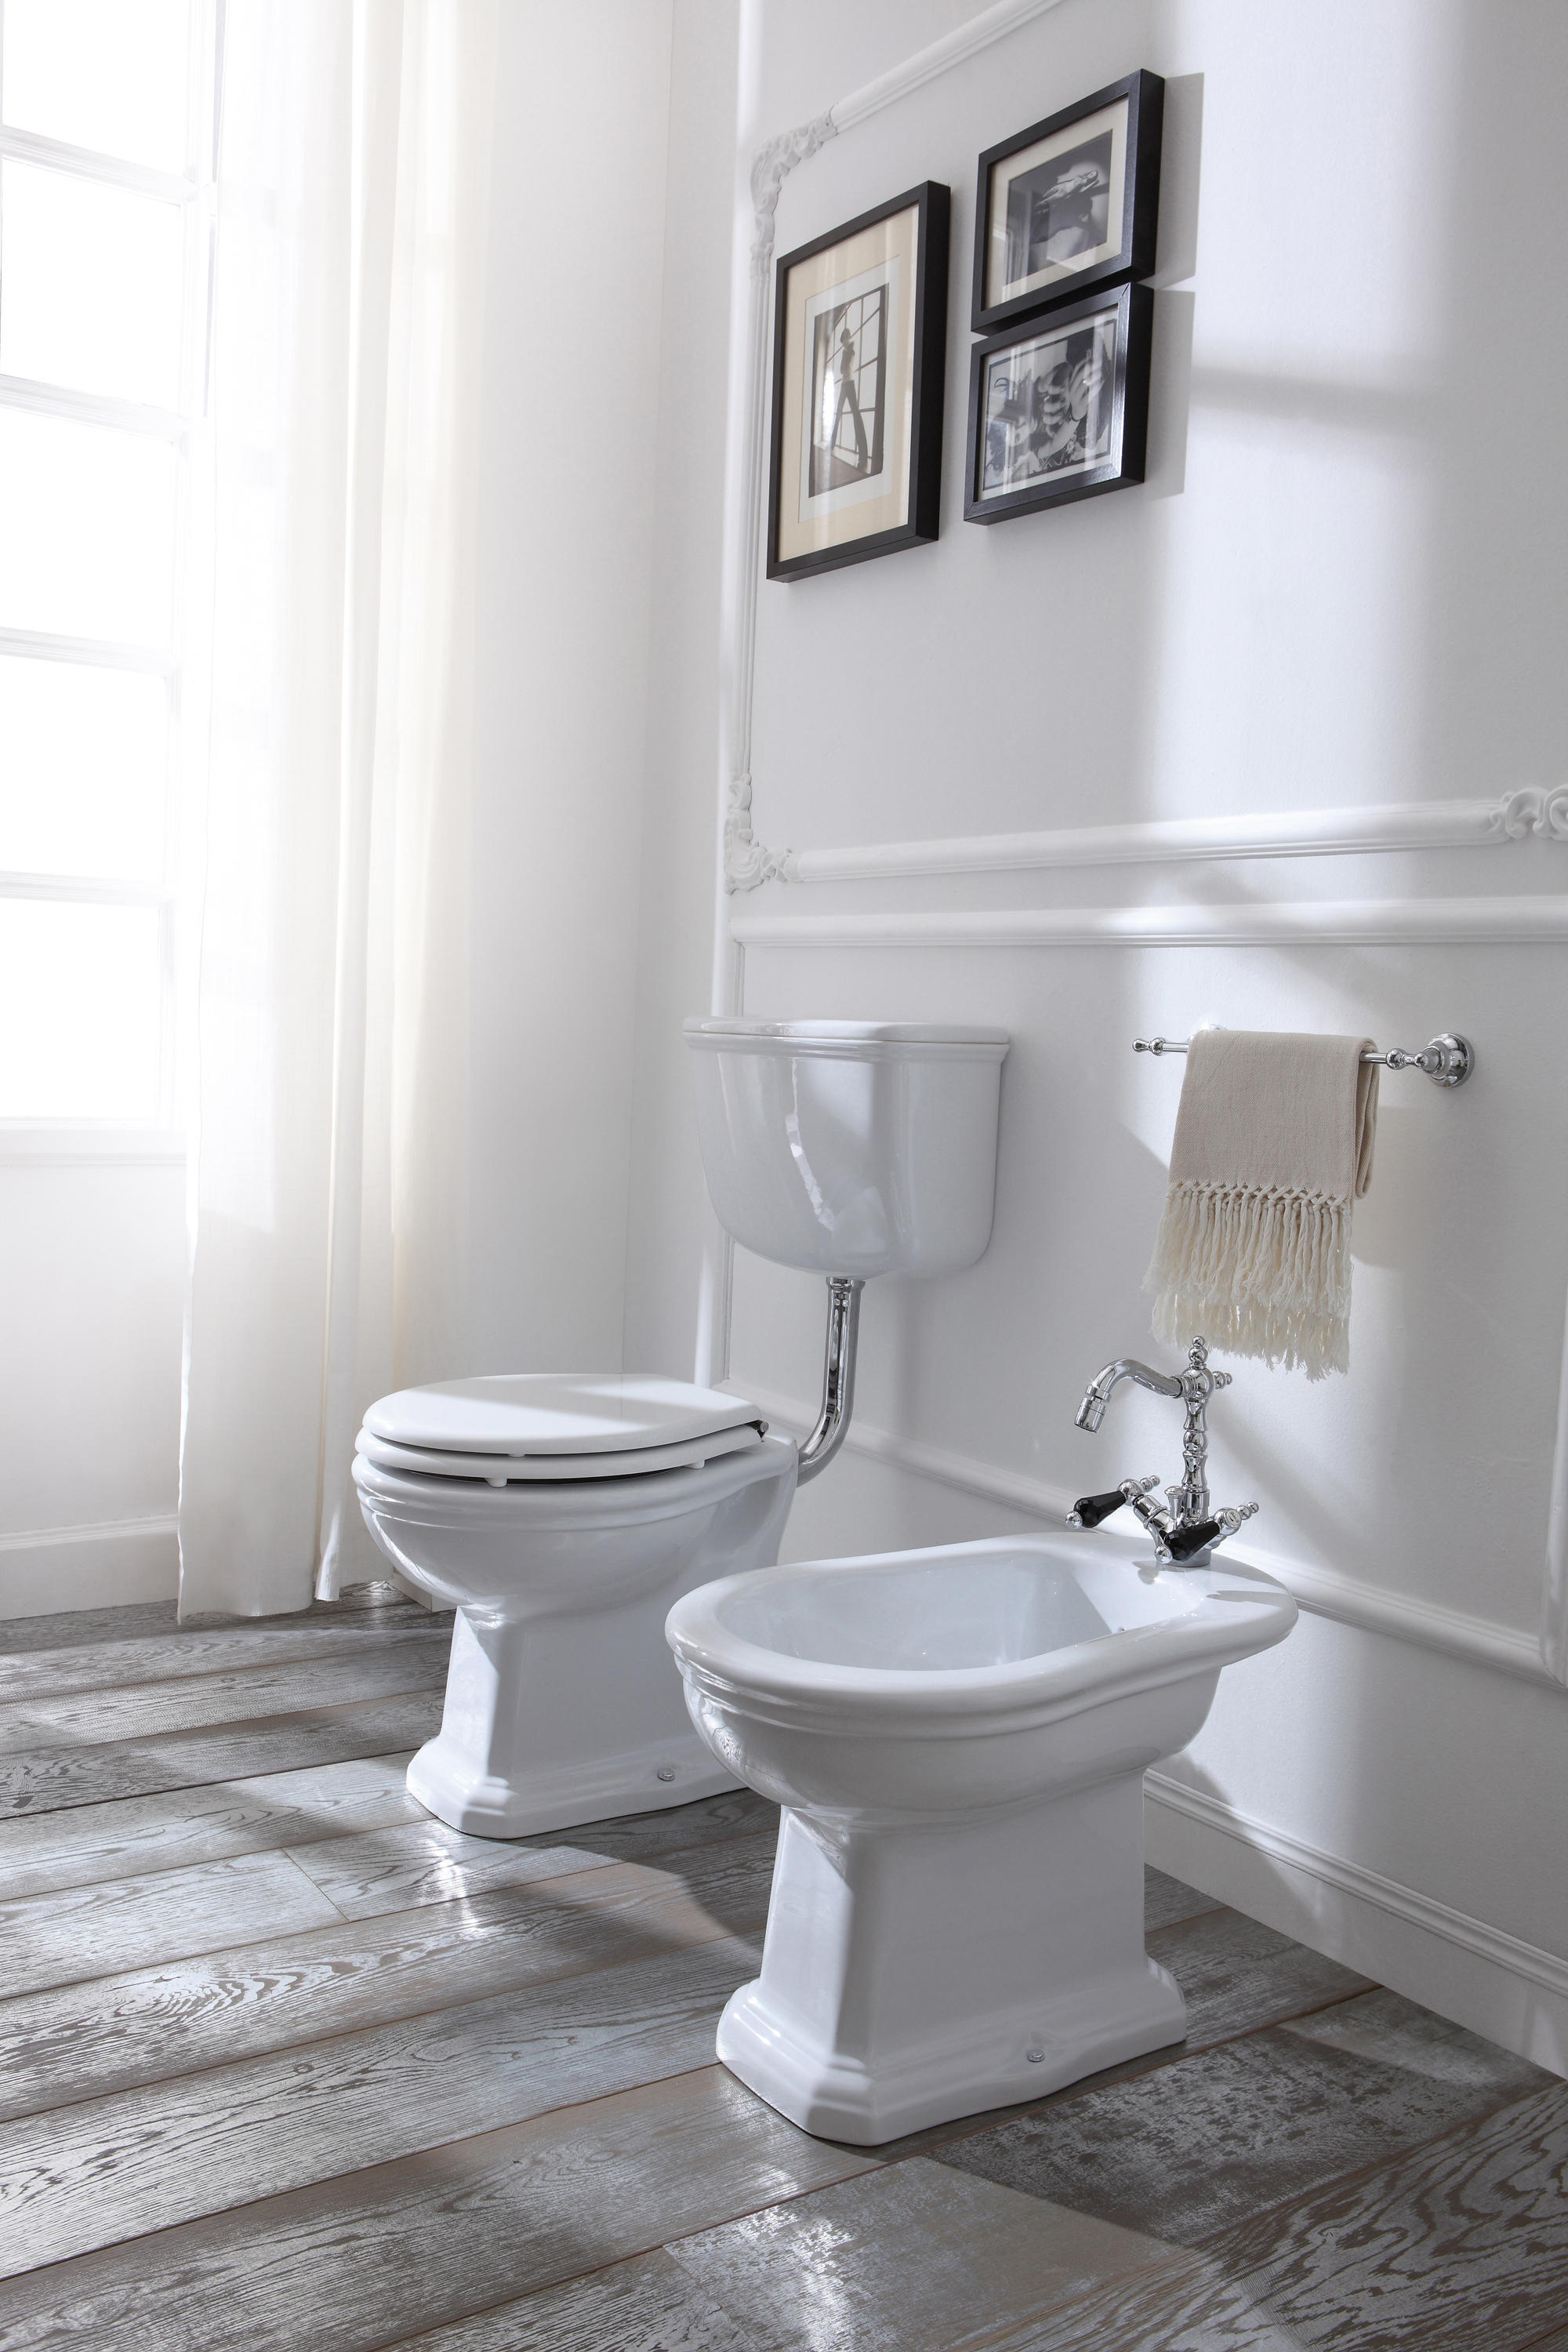 Impero style bidet a terra bidet olympia ceramica architonic - What is a bidet used for ...